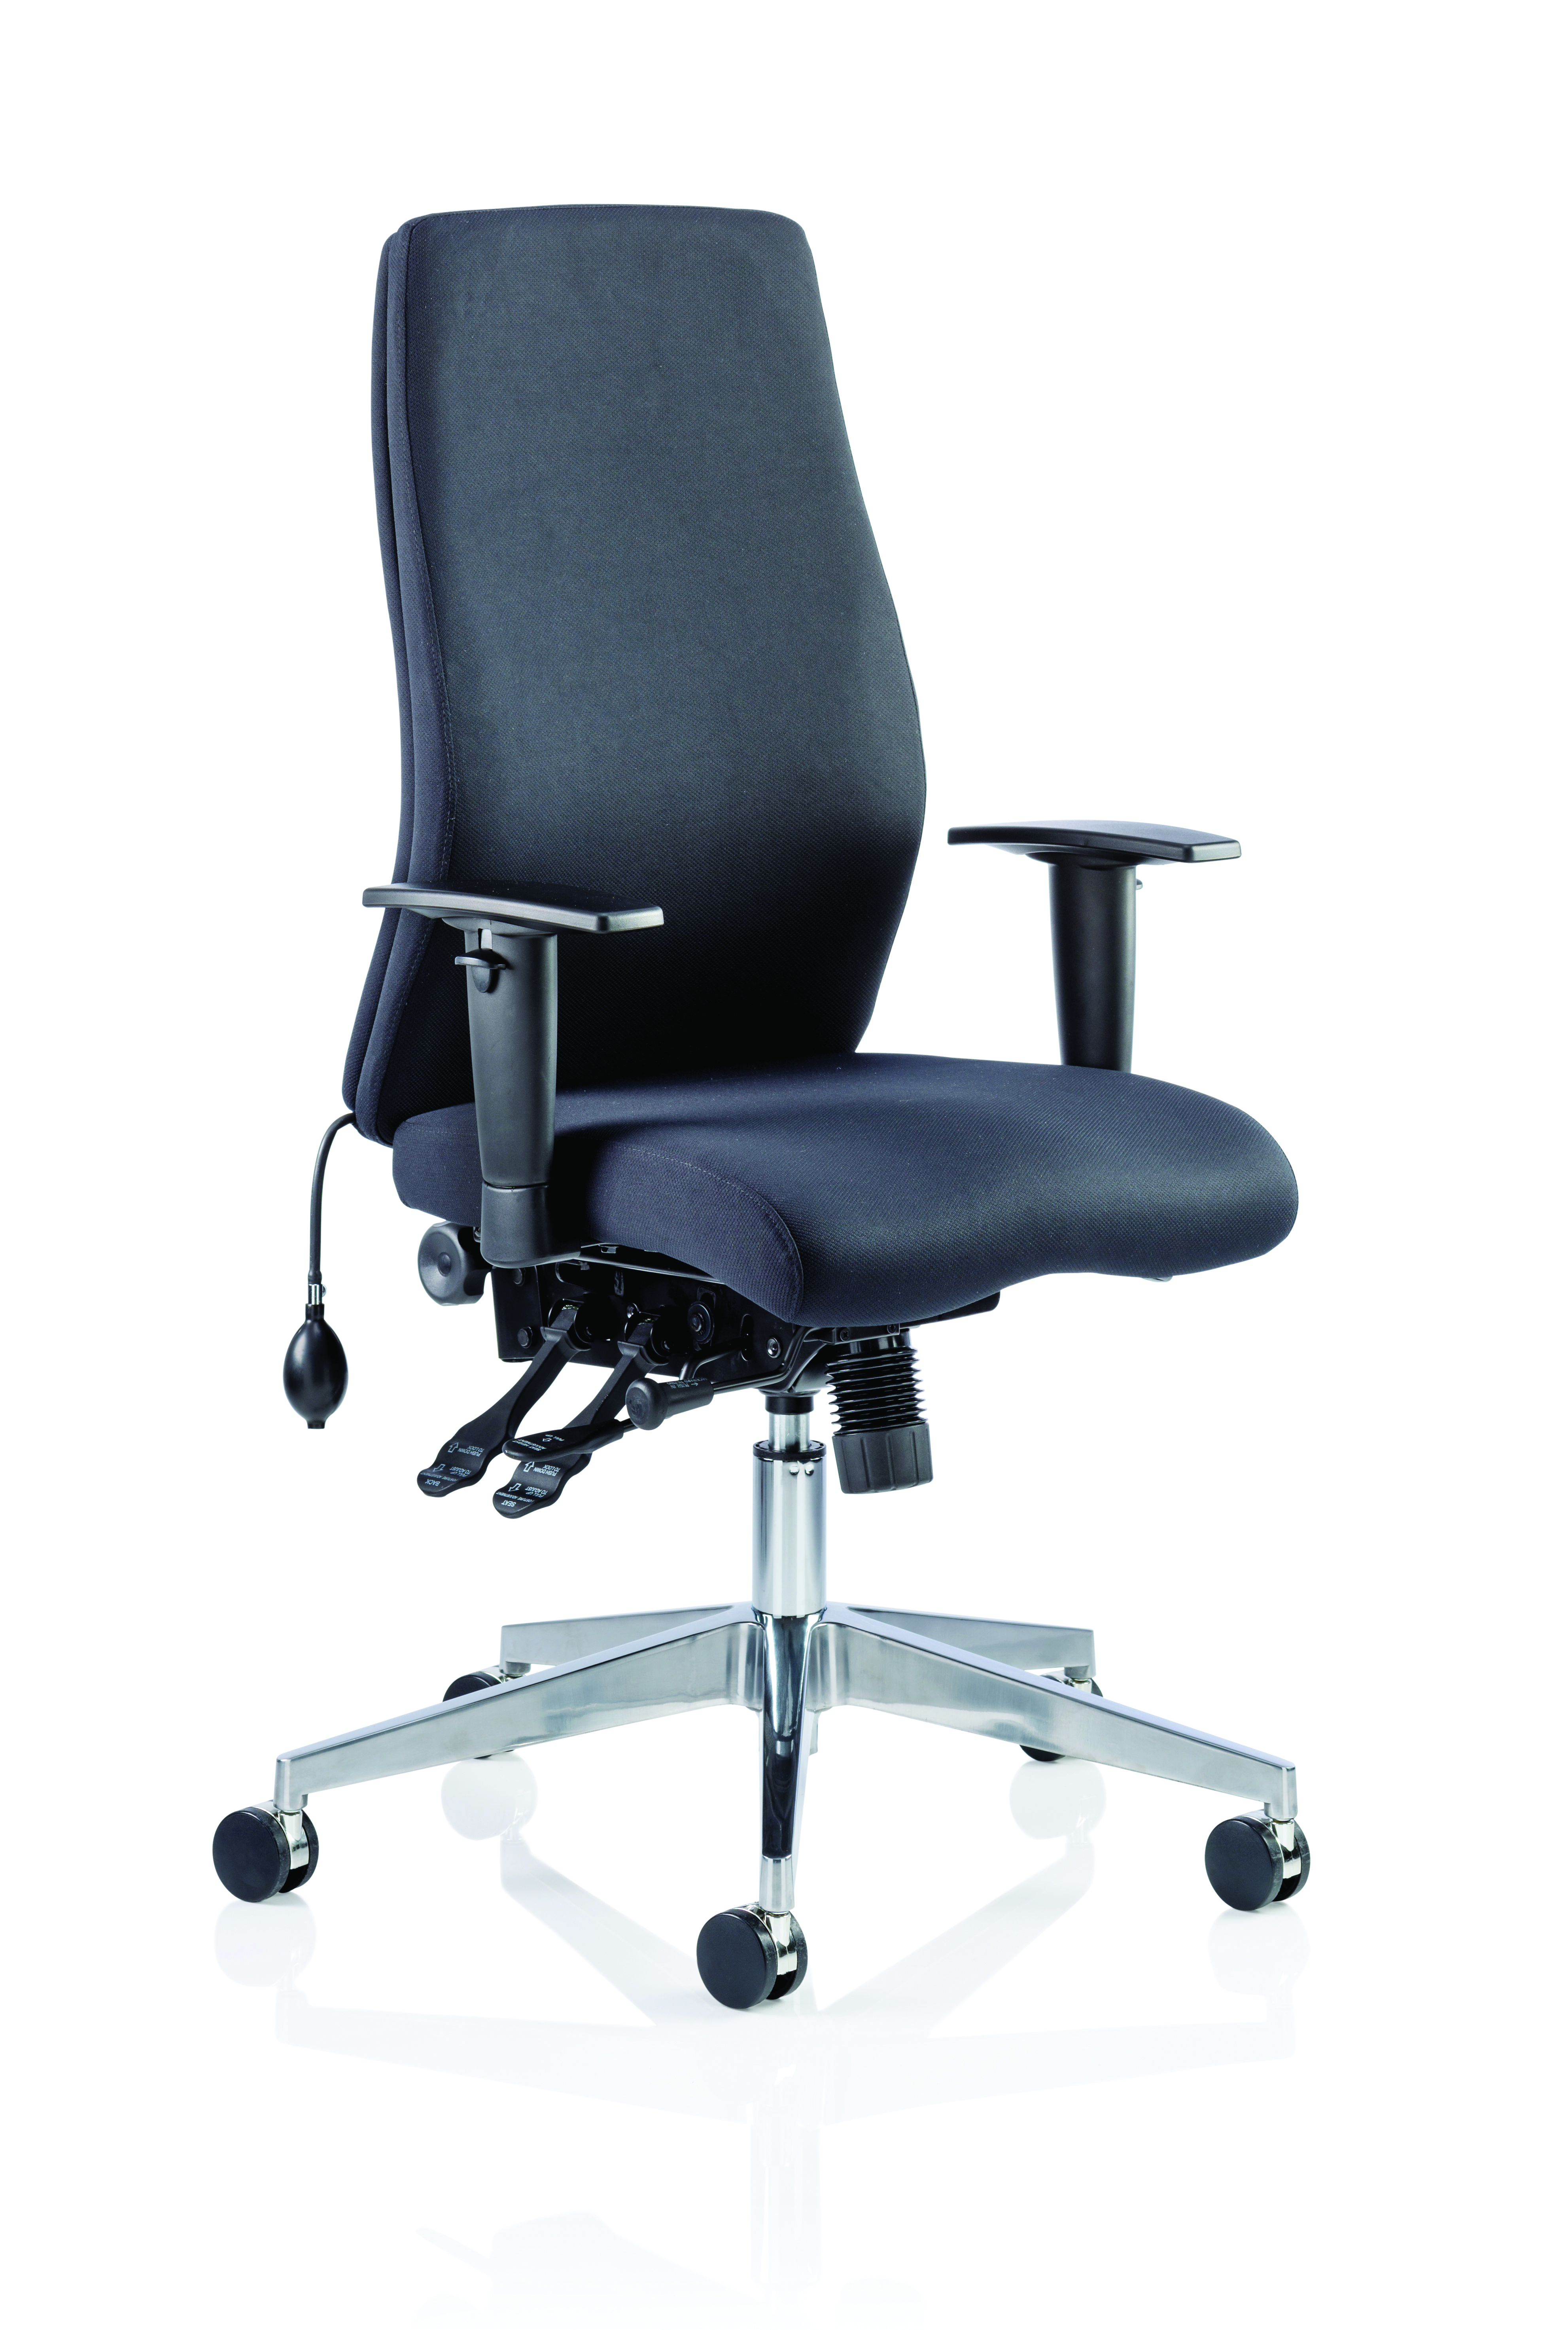 Desk Chairs Onyx Black Fabric Without Headrest With Arms OP000095